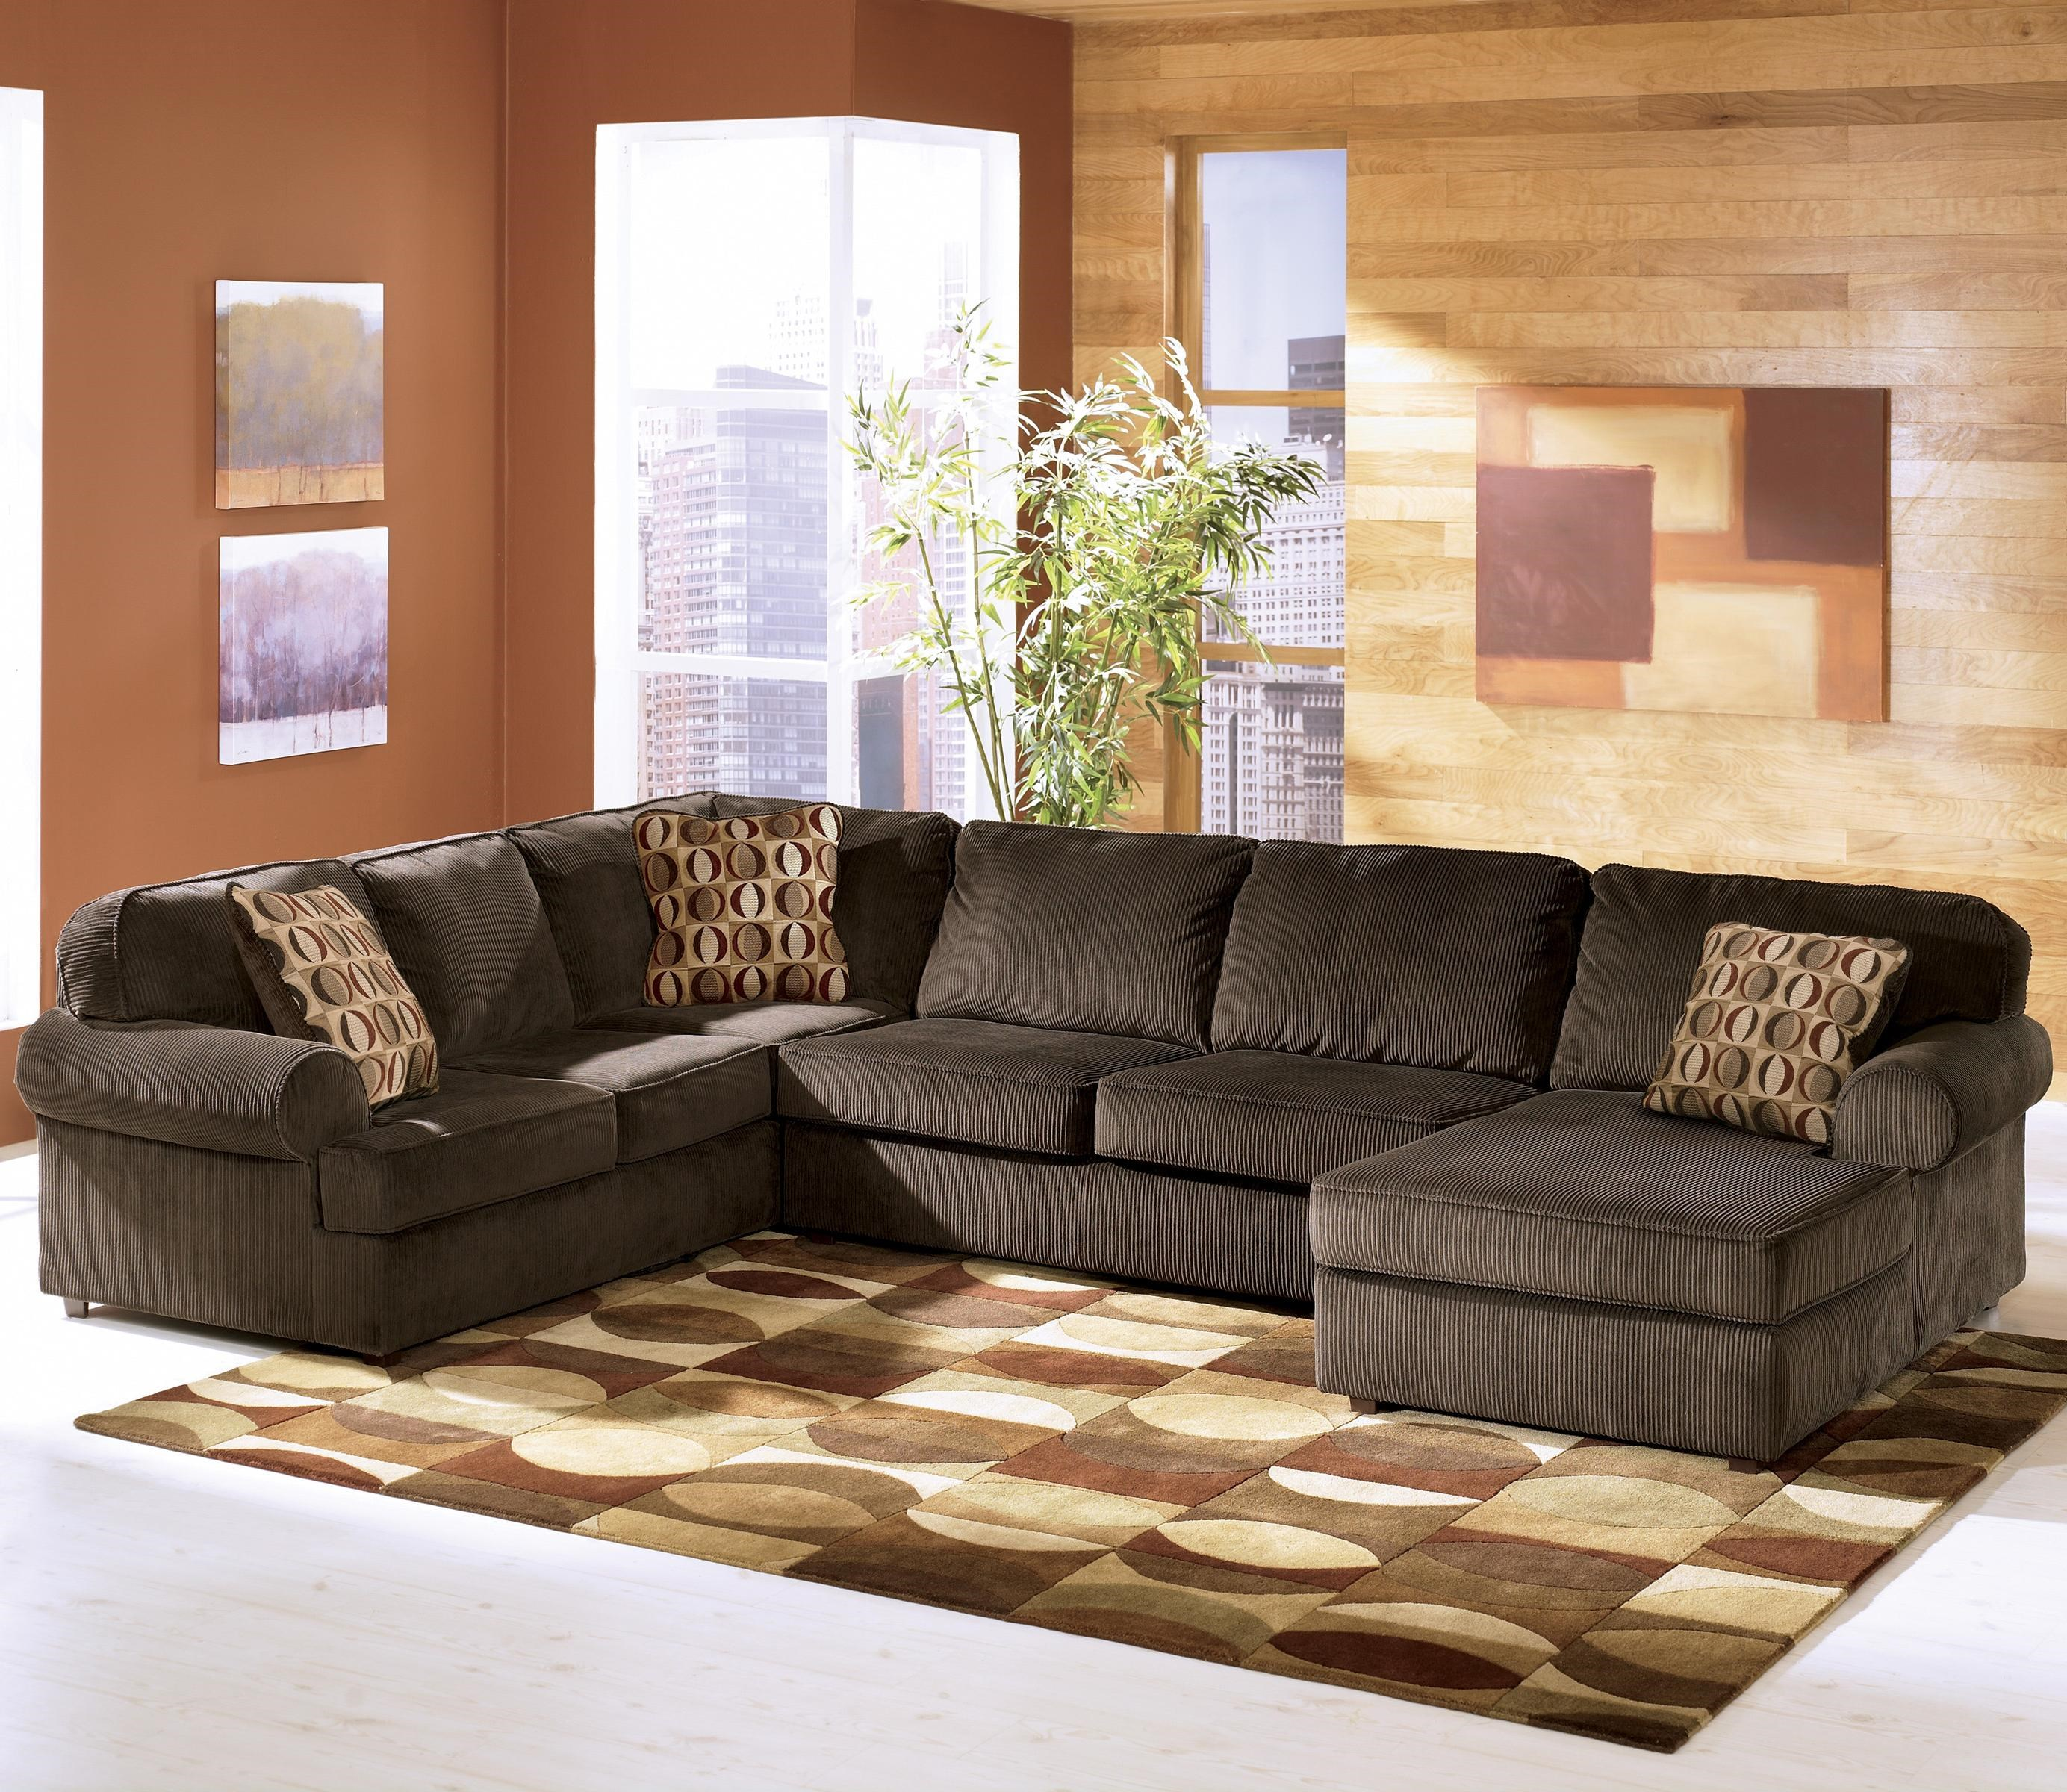 Ashley Furniture Vista - Chocolate Casual 3-Piece Sectional with Right Chaise - Olindeu0027s Furniture - Sofa Sectional : ashley furniture sofa sectionals - Sectionals, Sofas & Couches